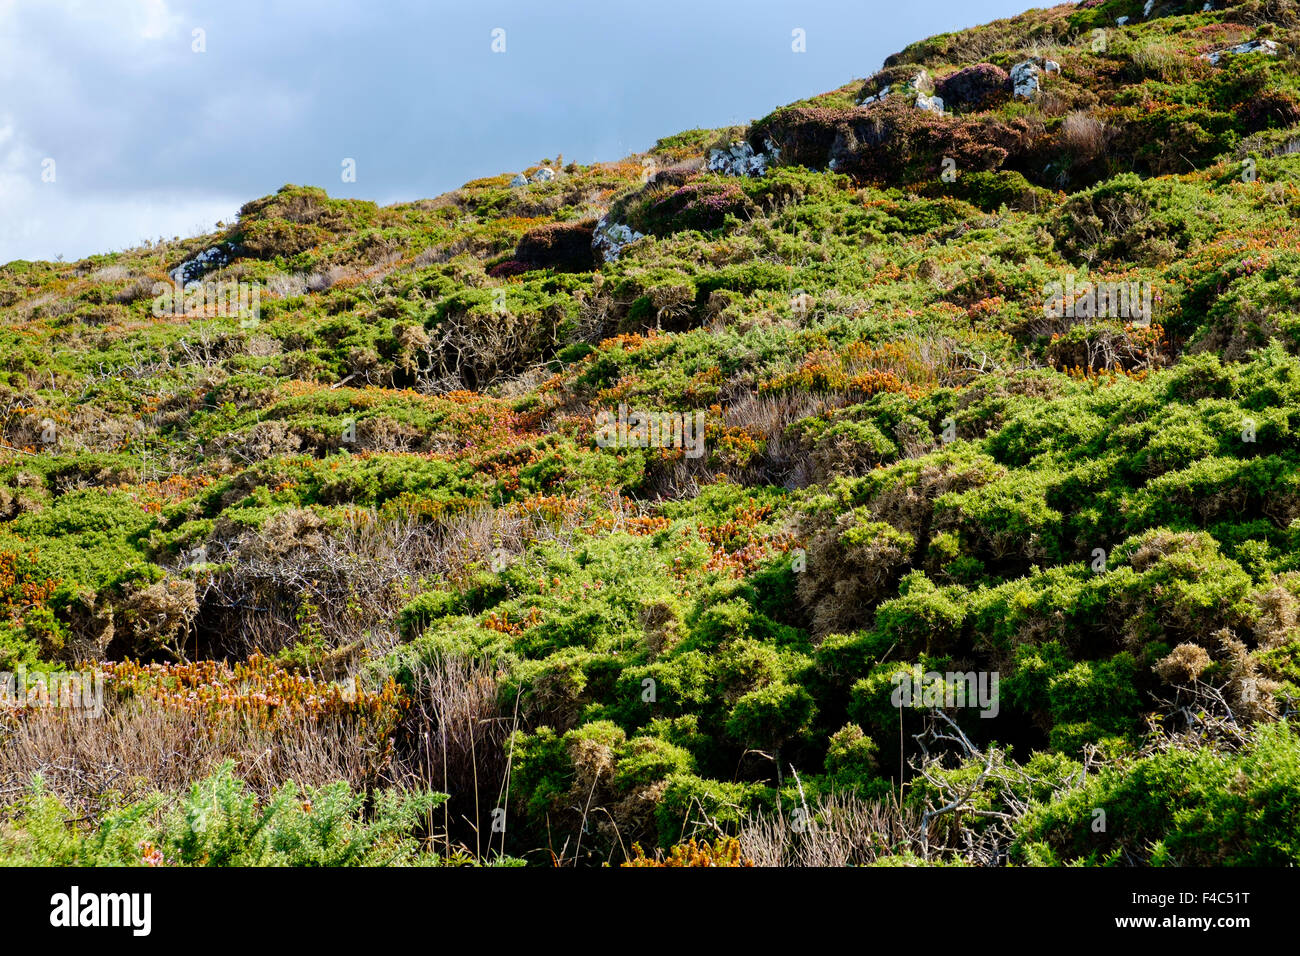 Heather and gorse bushes by the coast in early autumn / late summer, Cornwall, England, UK - Stock Image